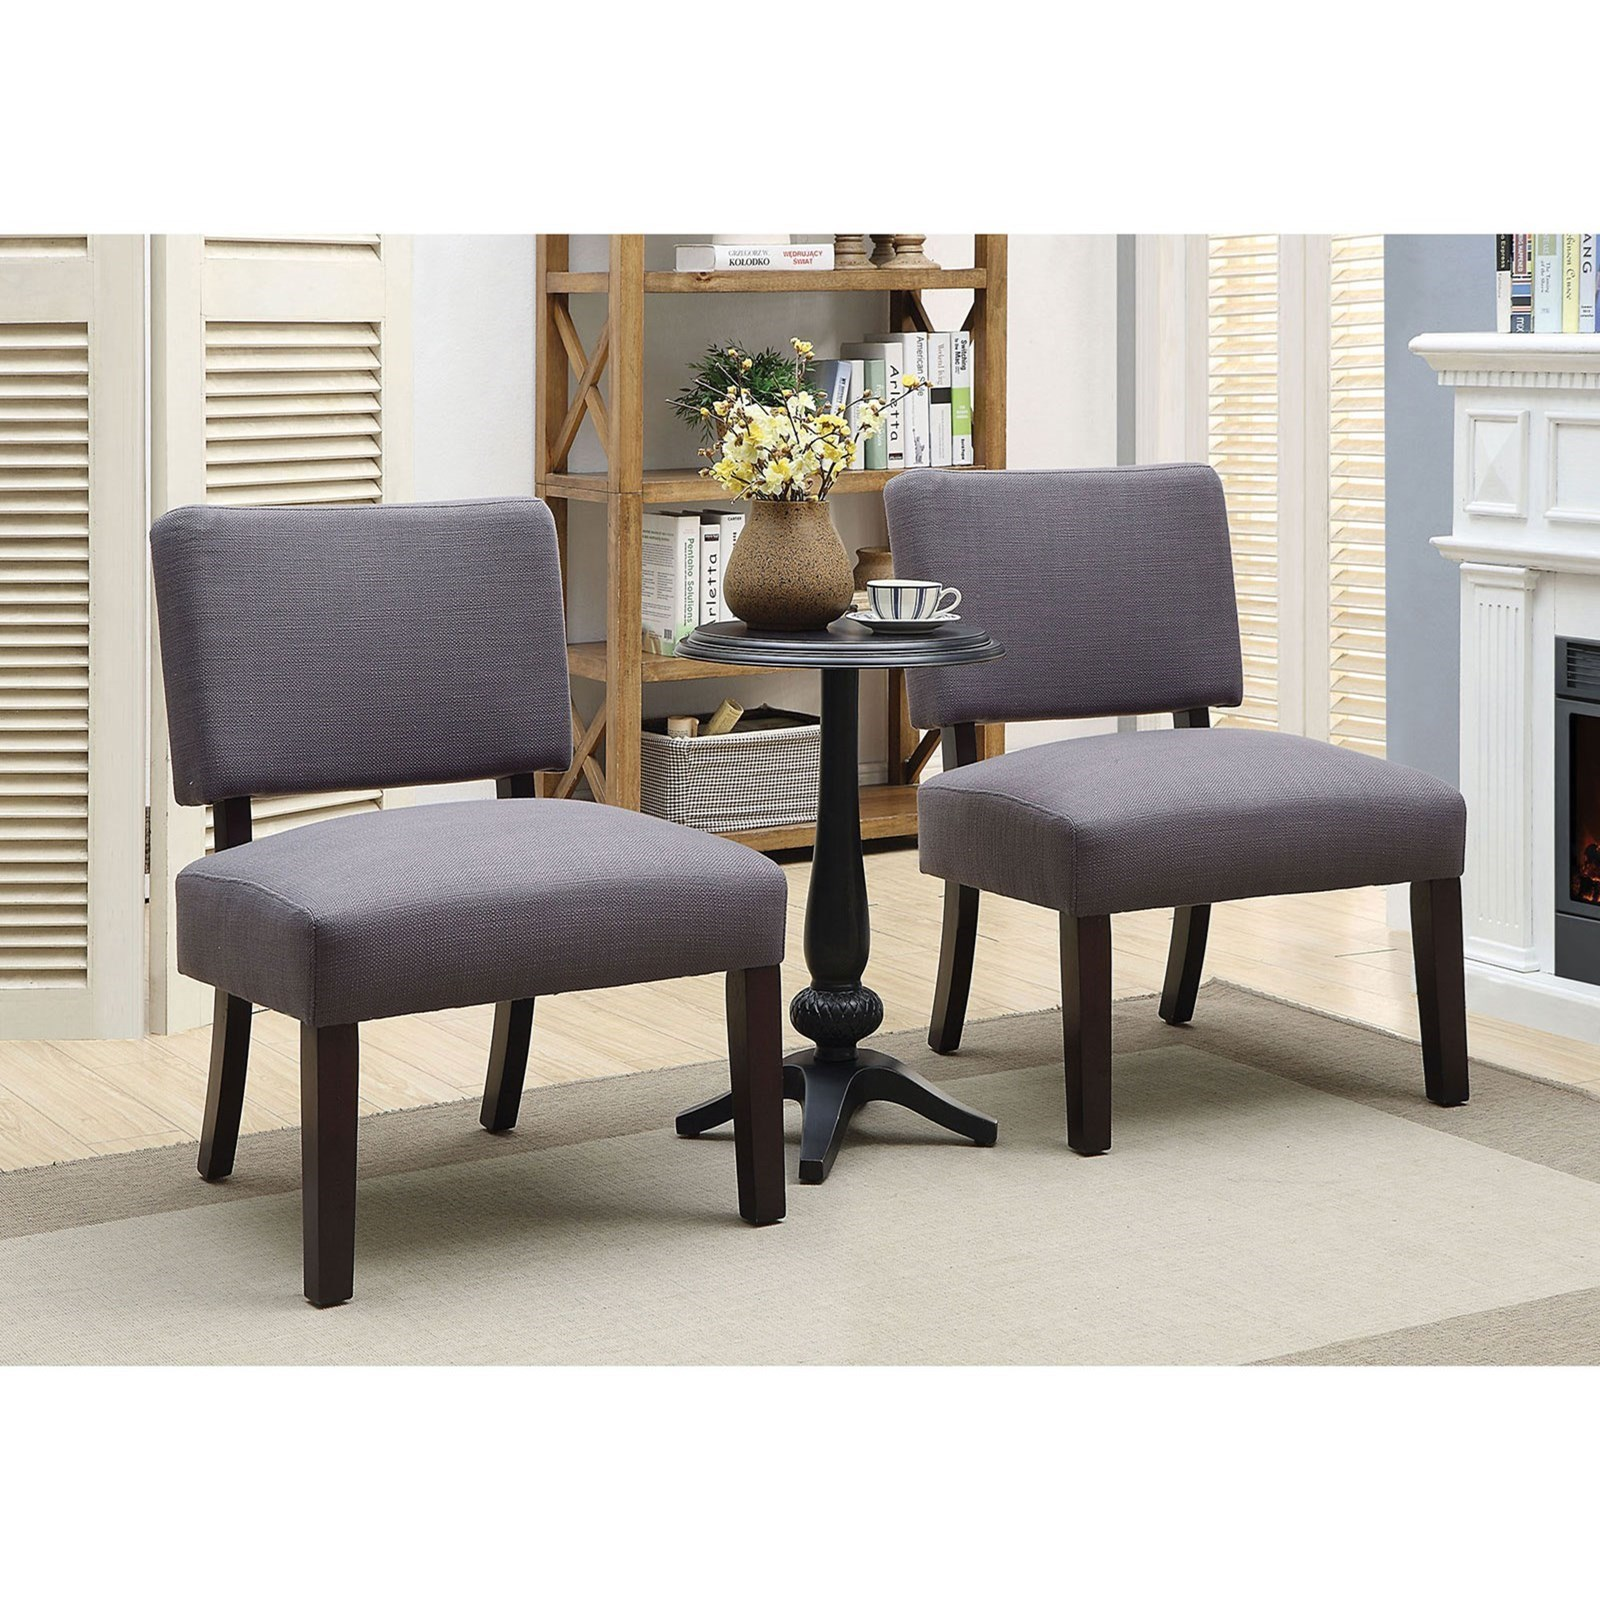 2 accent chairs and table set sit me up chair furniture of america arvid 3 piece with transitional end